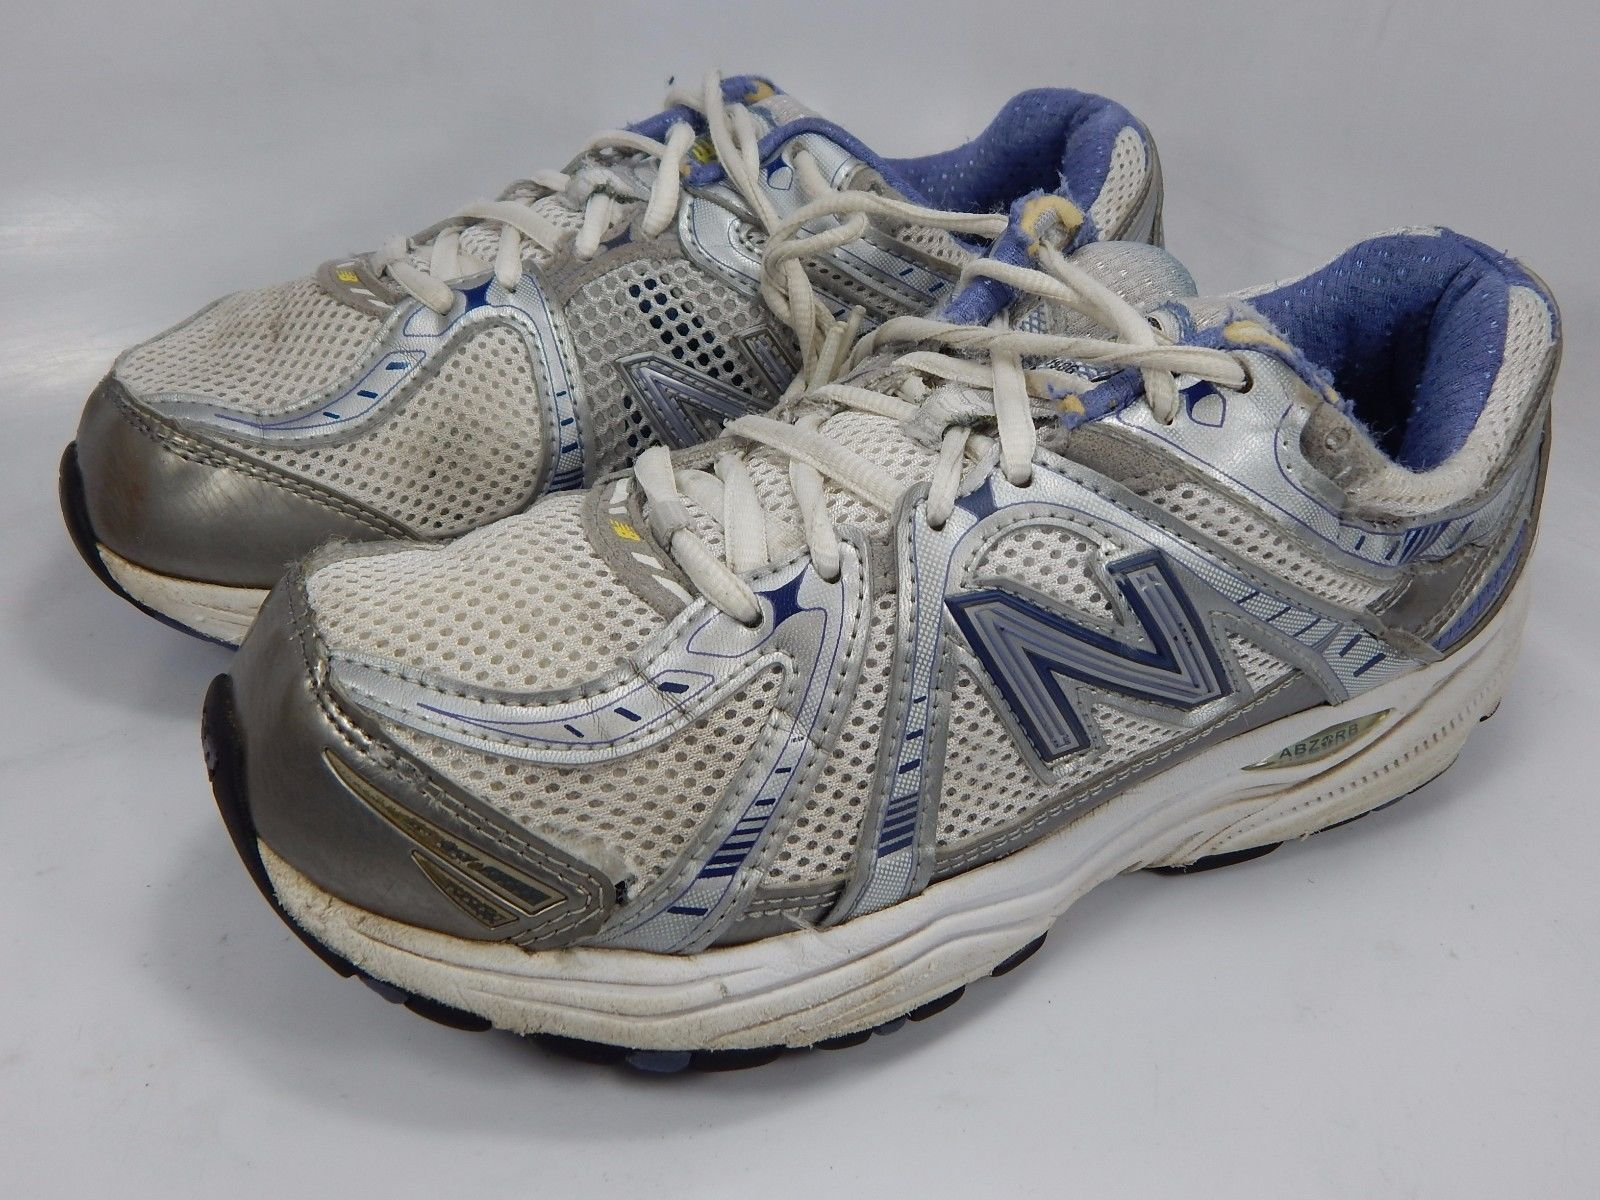 New Balance 840 Women's Running Shoes Size US 8 M (B) EU 39 White Blue WR840WB